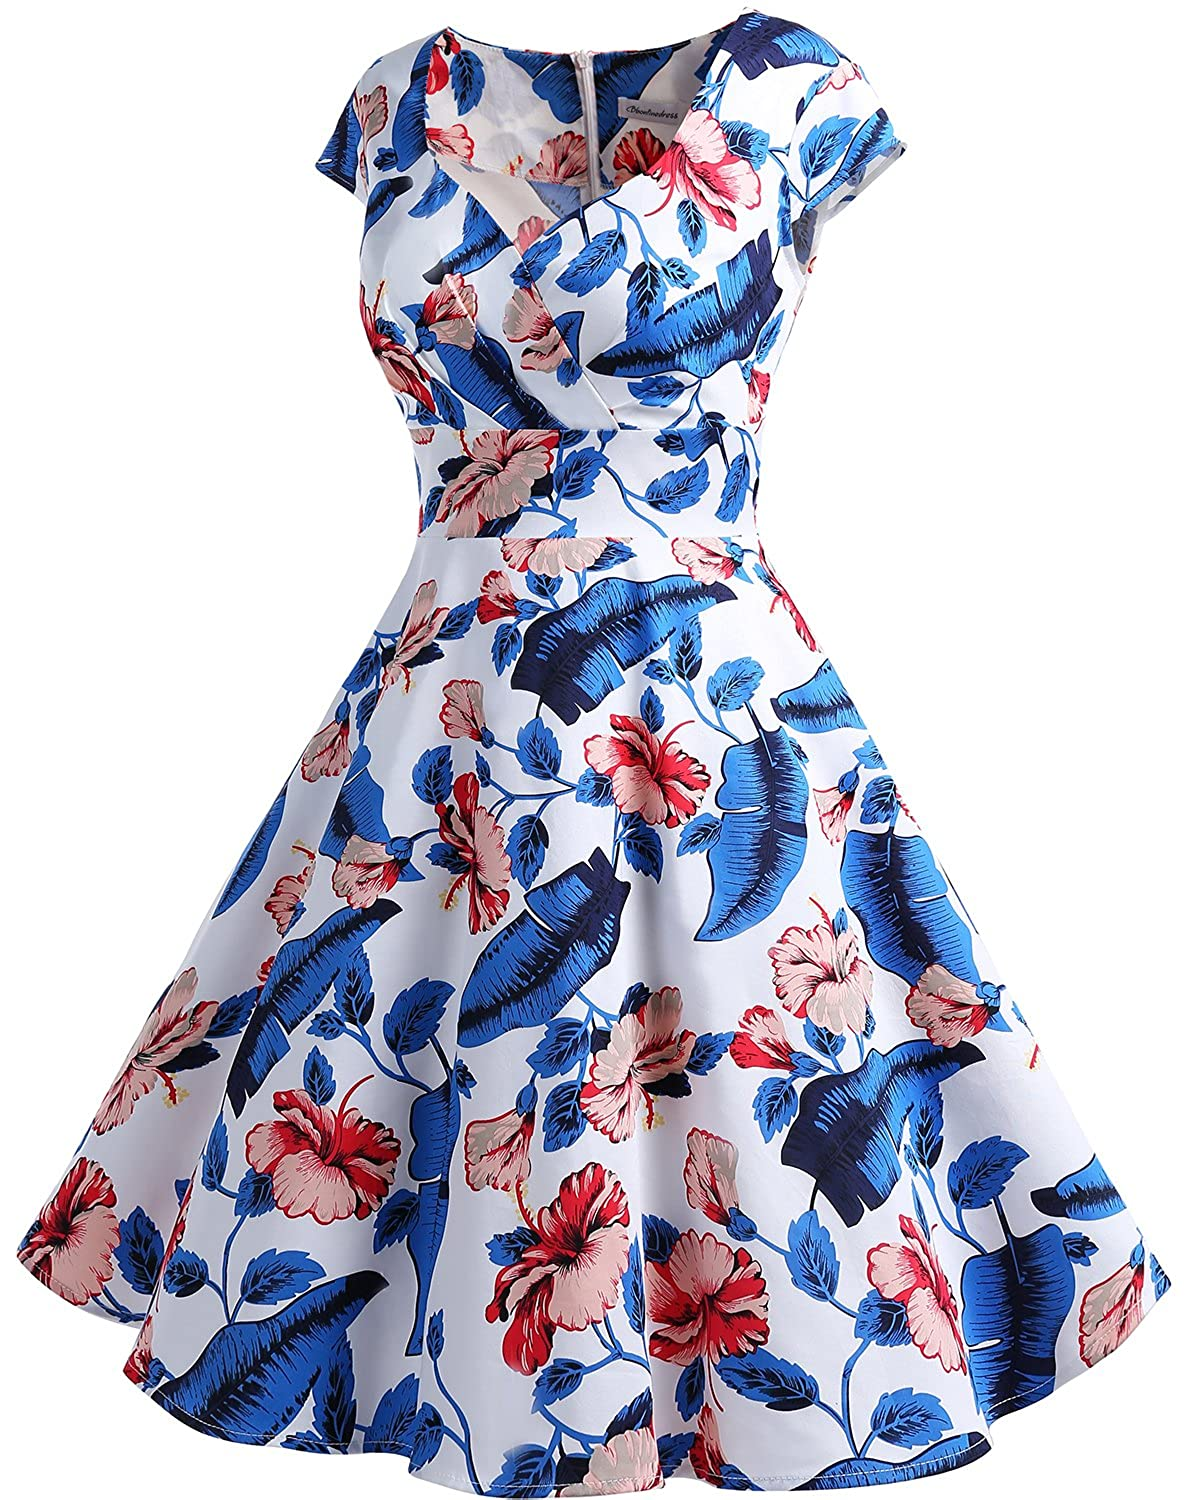 Bbonlinedress Womens Vintage 1950s cap Sleeve Rockabilly Cocktail Dress Multi-Colored